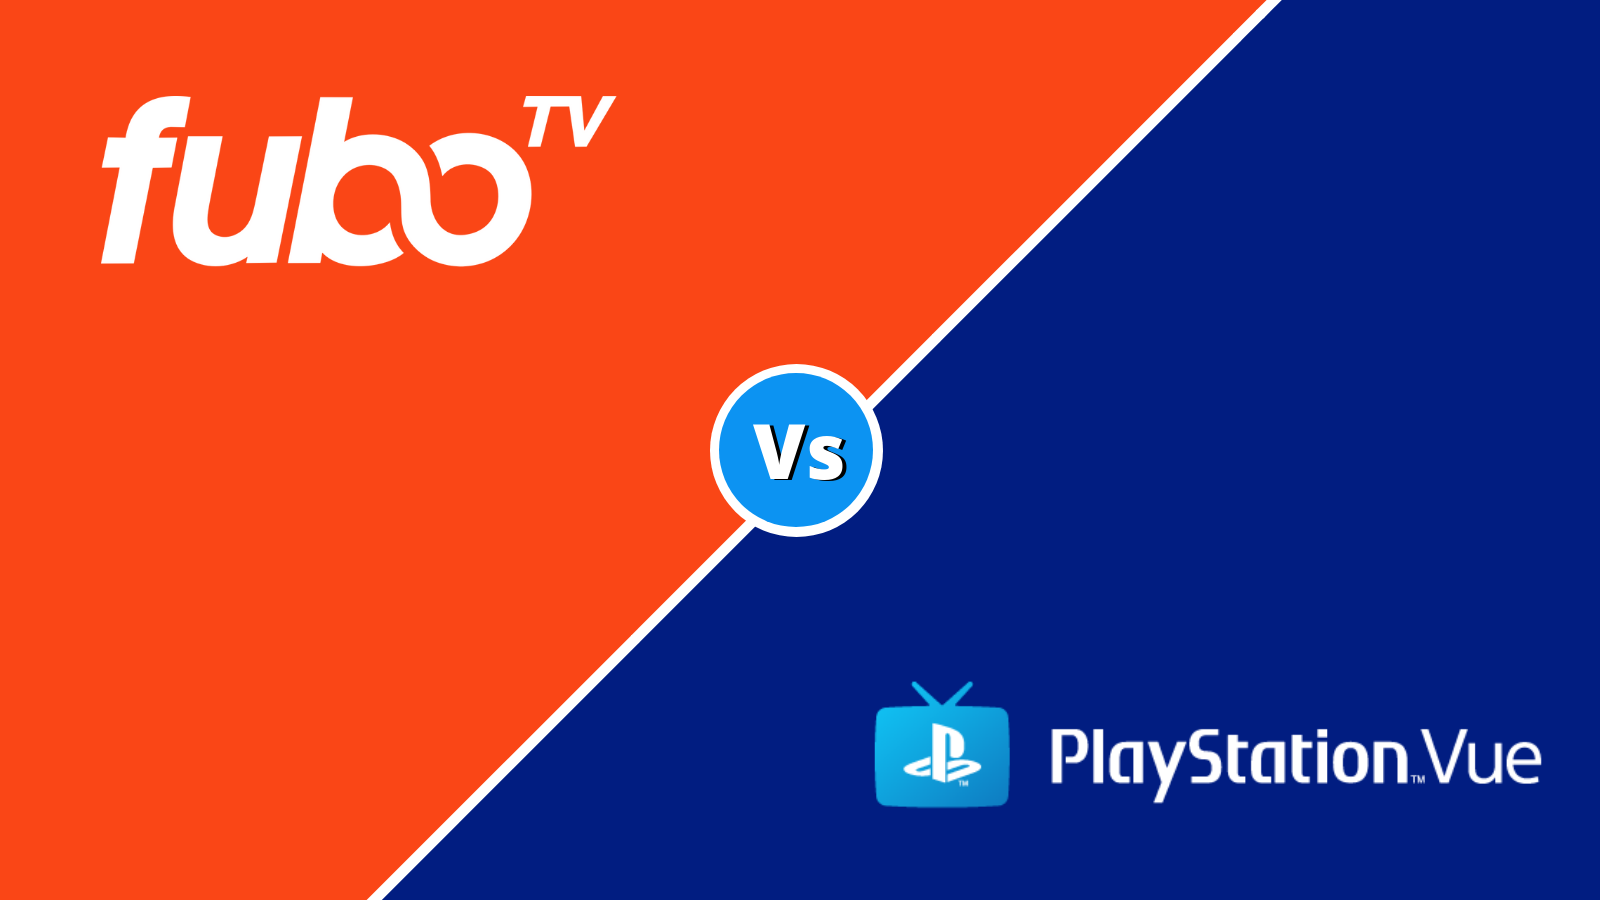 fuboTV vs PlayStation Vue: Which One Wins the Battle?